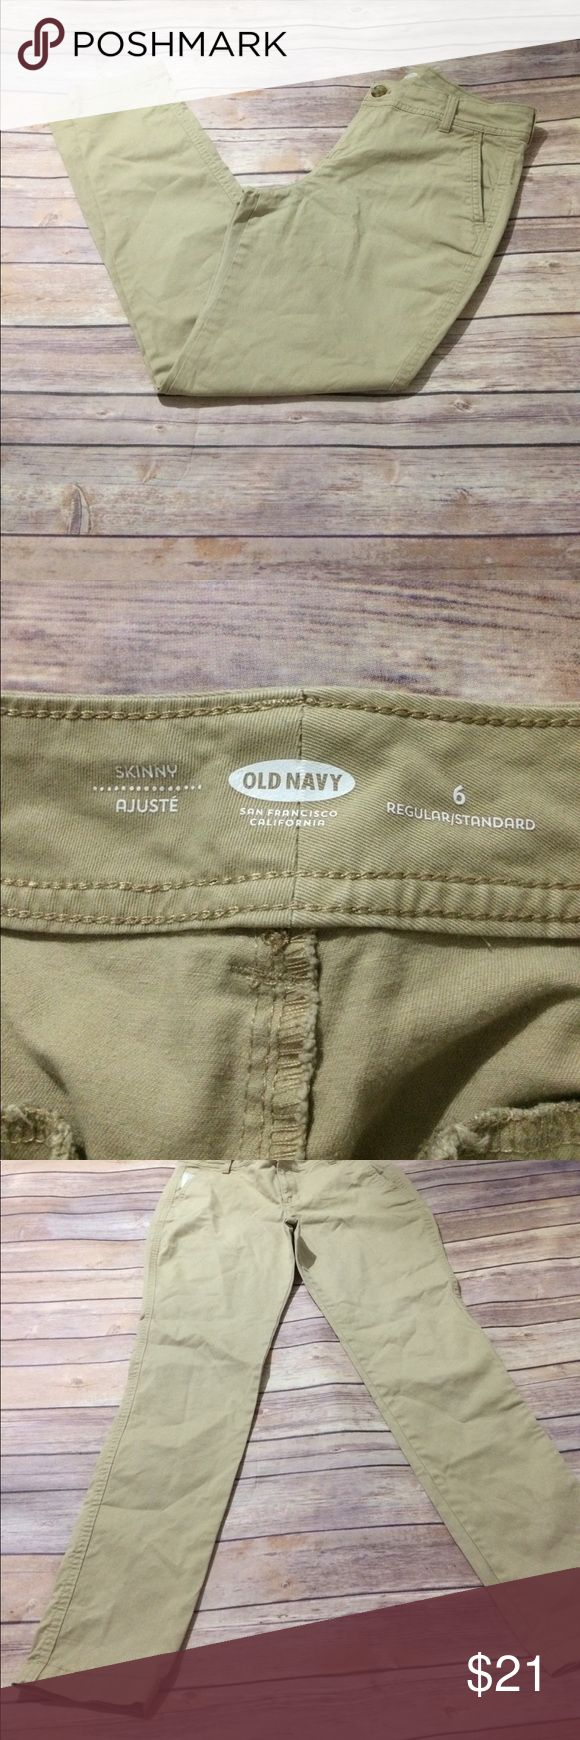 """Old Navy Khaki Skinny Jeans Like new, barely worn.  Length: 37.5"""" Inseam: 29"""" Rise: 10"""" Waist: 30"""" Hips: 36"""" 👜Submit a bundle for a private offer! 👜.       🚫Smoke free, pet free home. No trades. 🚫 Old Navy Jeans Skinny"""